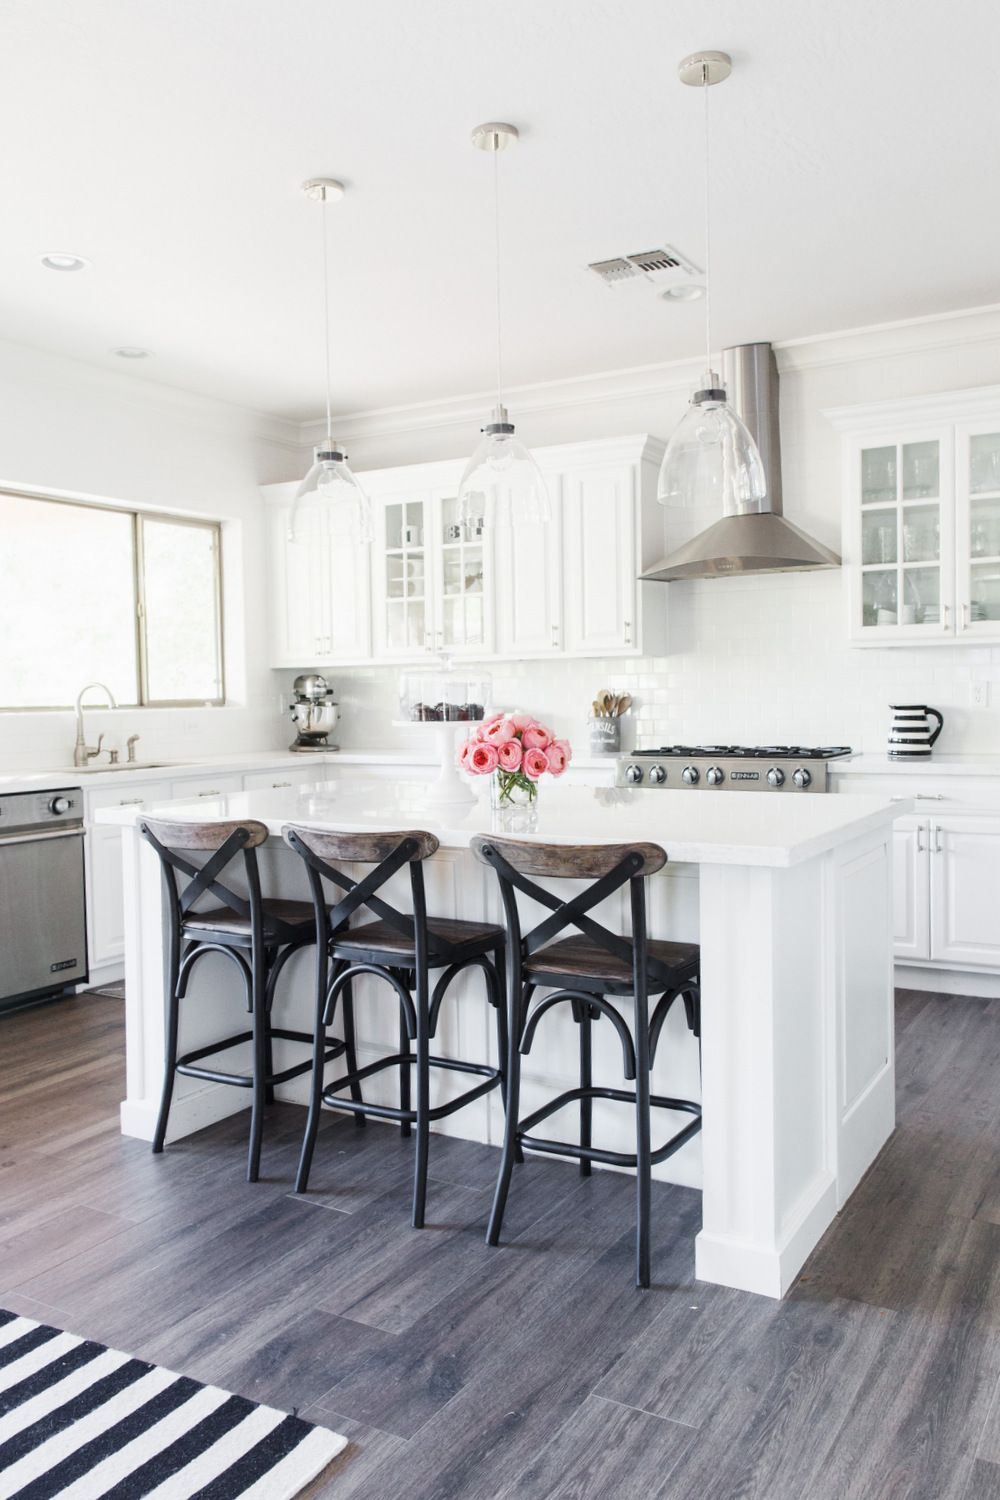 White Cabinets Kitchen Tile Floor Tomkat Home Tour 2016  White Quartz Countertops White Subway